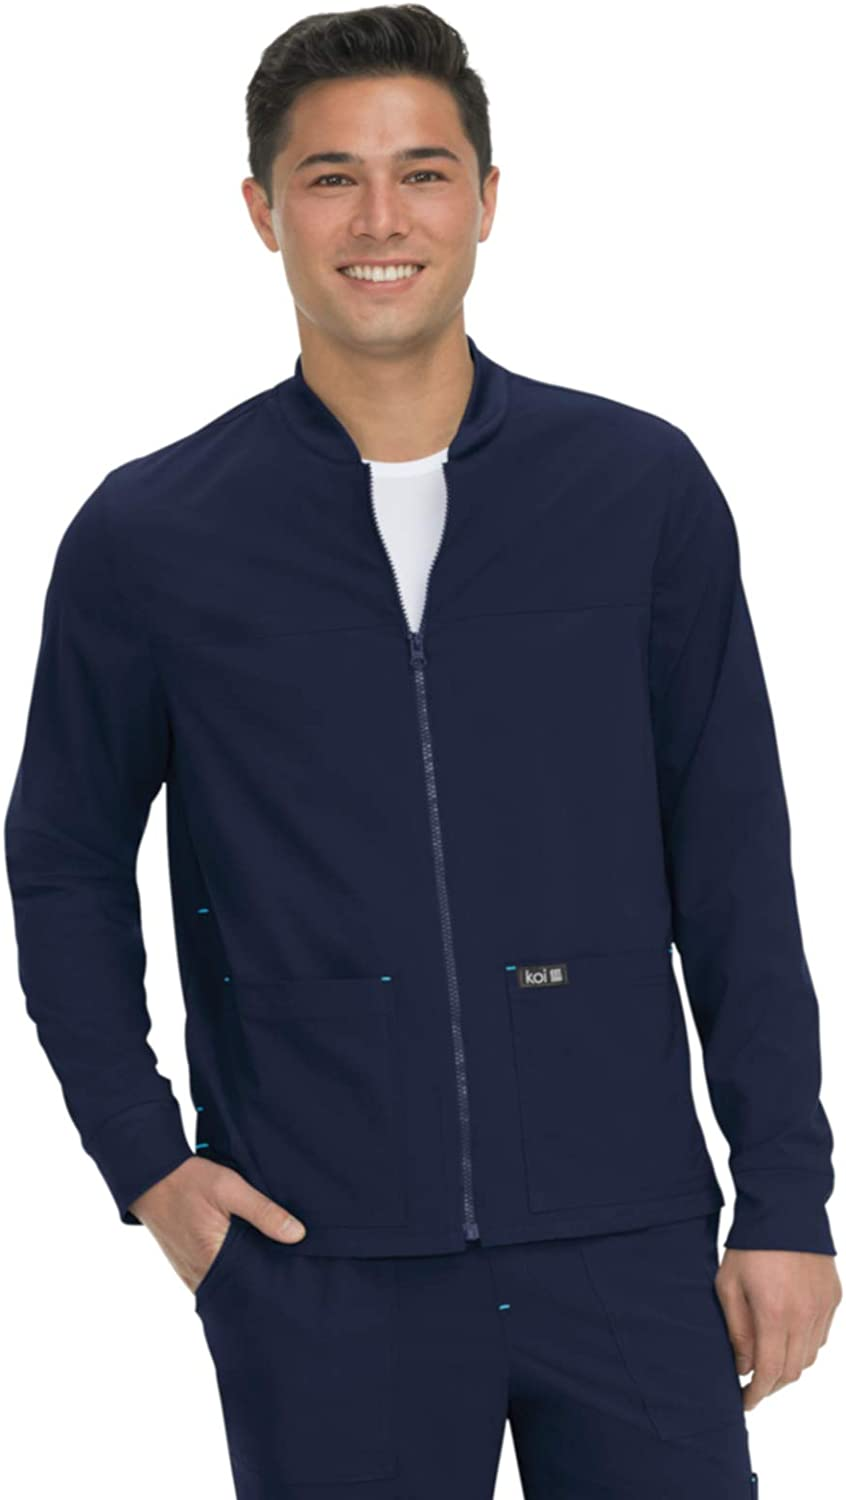 KOI Basics Comfortable Easy Care Unisex Scrub Hayden Free shipping Cheap mail order sales anywhere in the nation Jacket